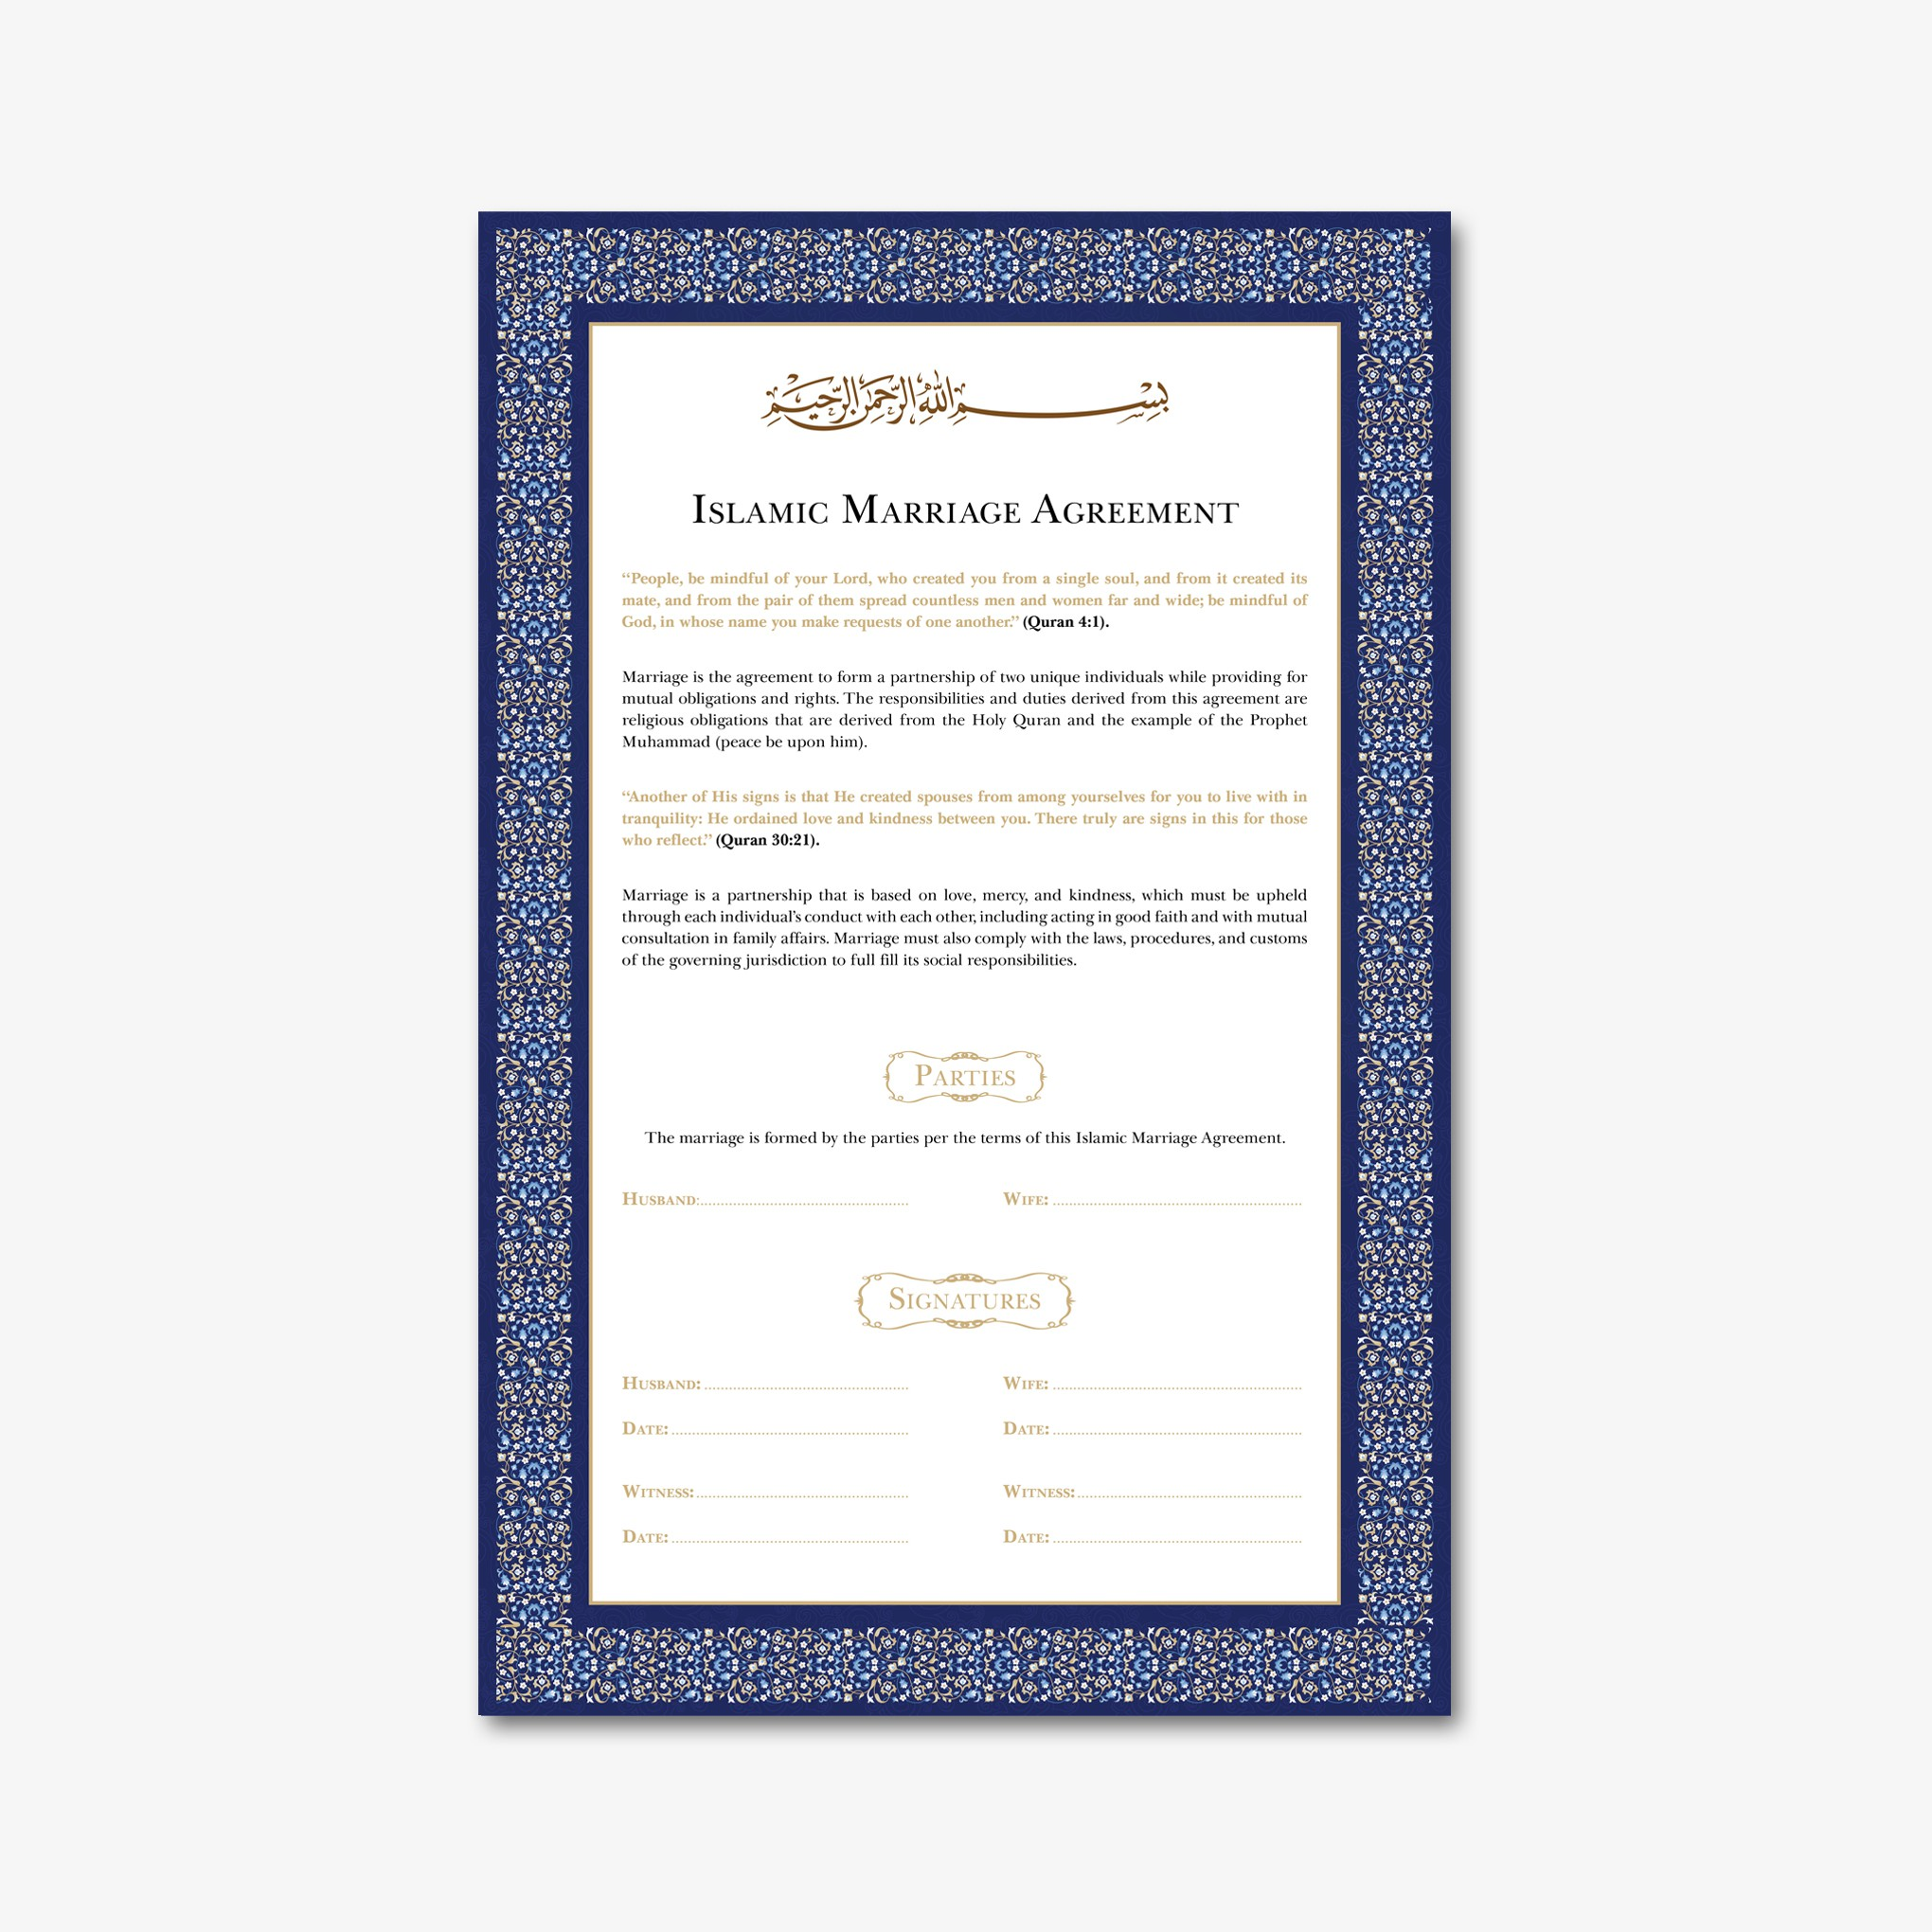 Design A Beautiful Islamic Marriage Agreement Document Template